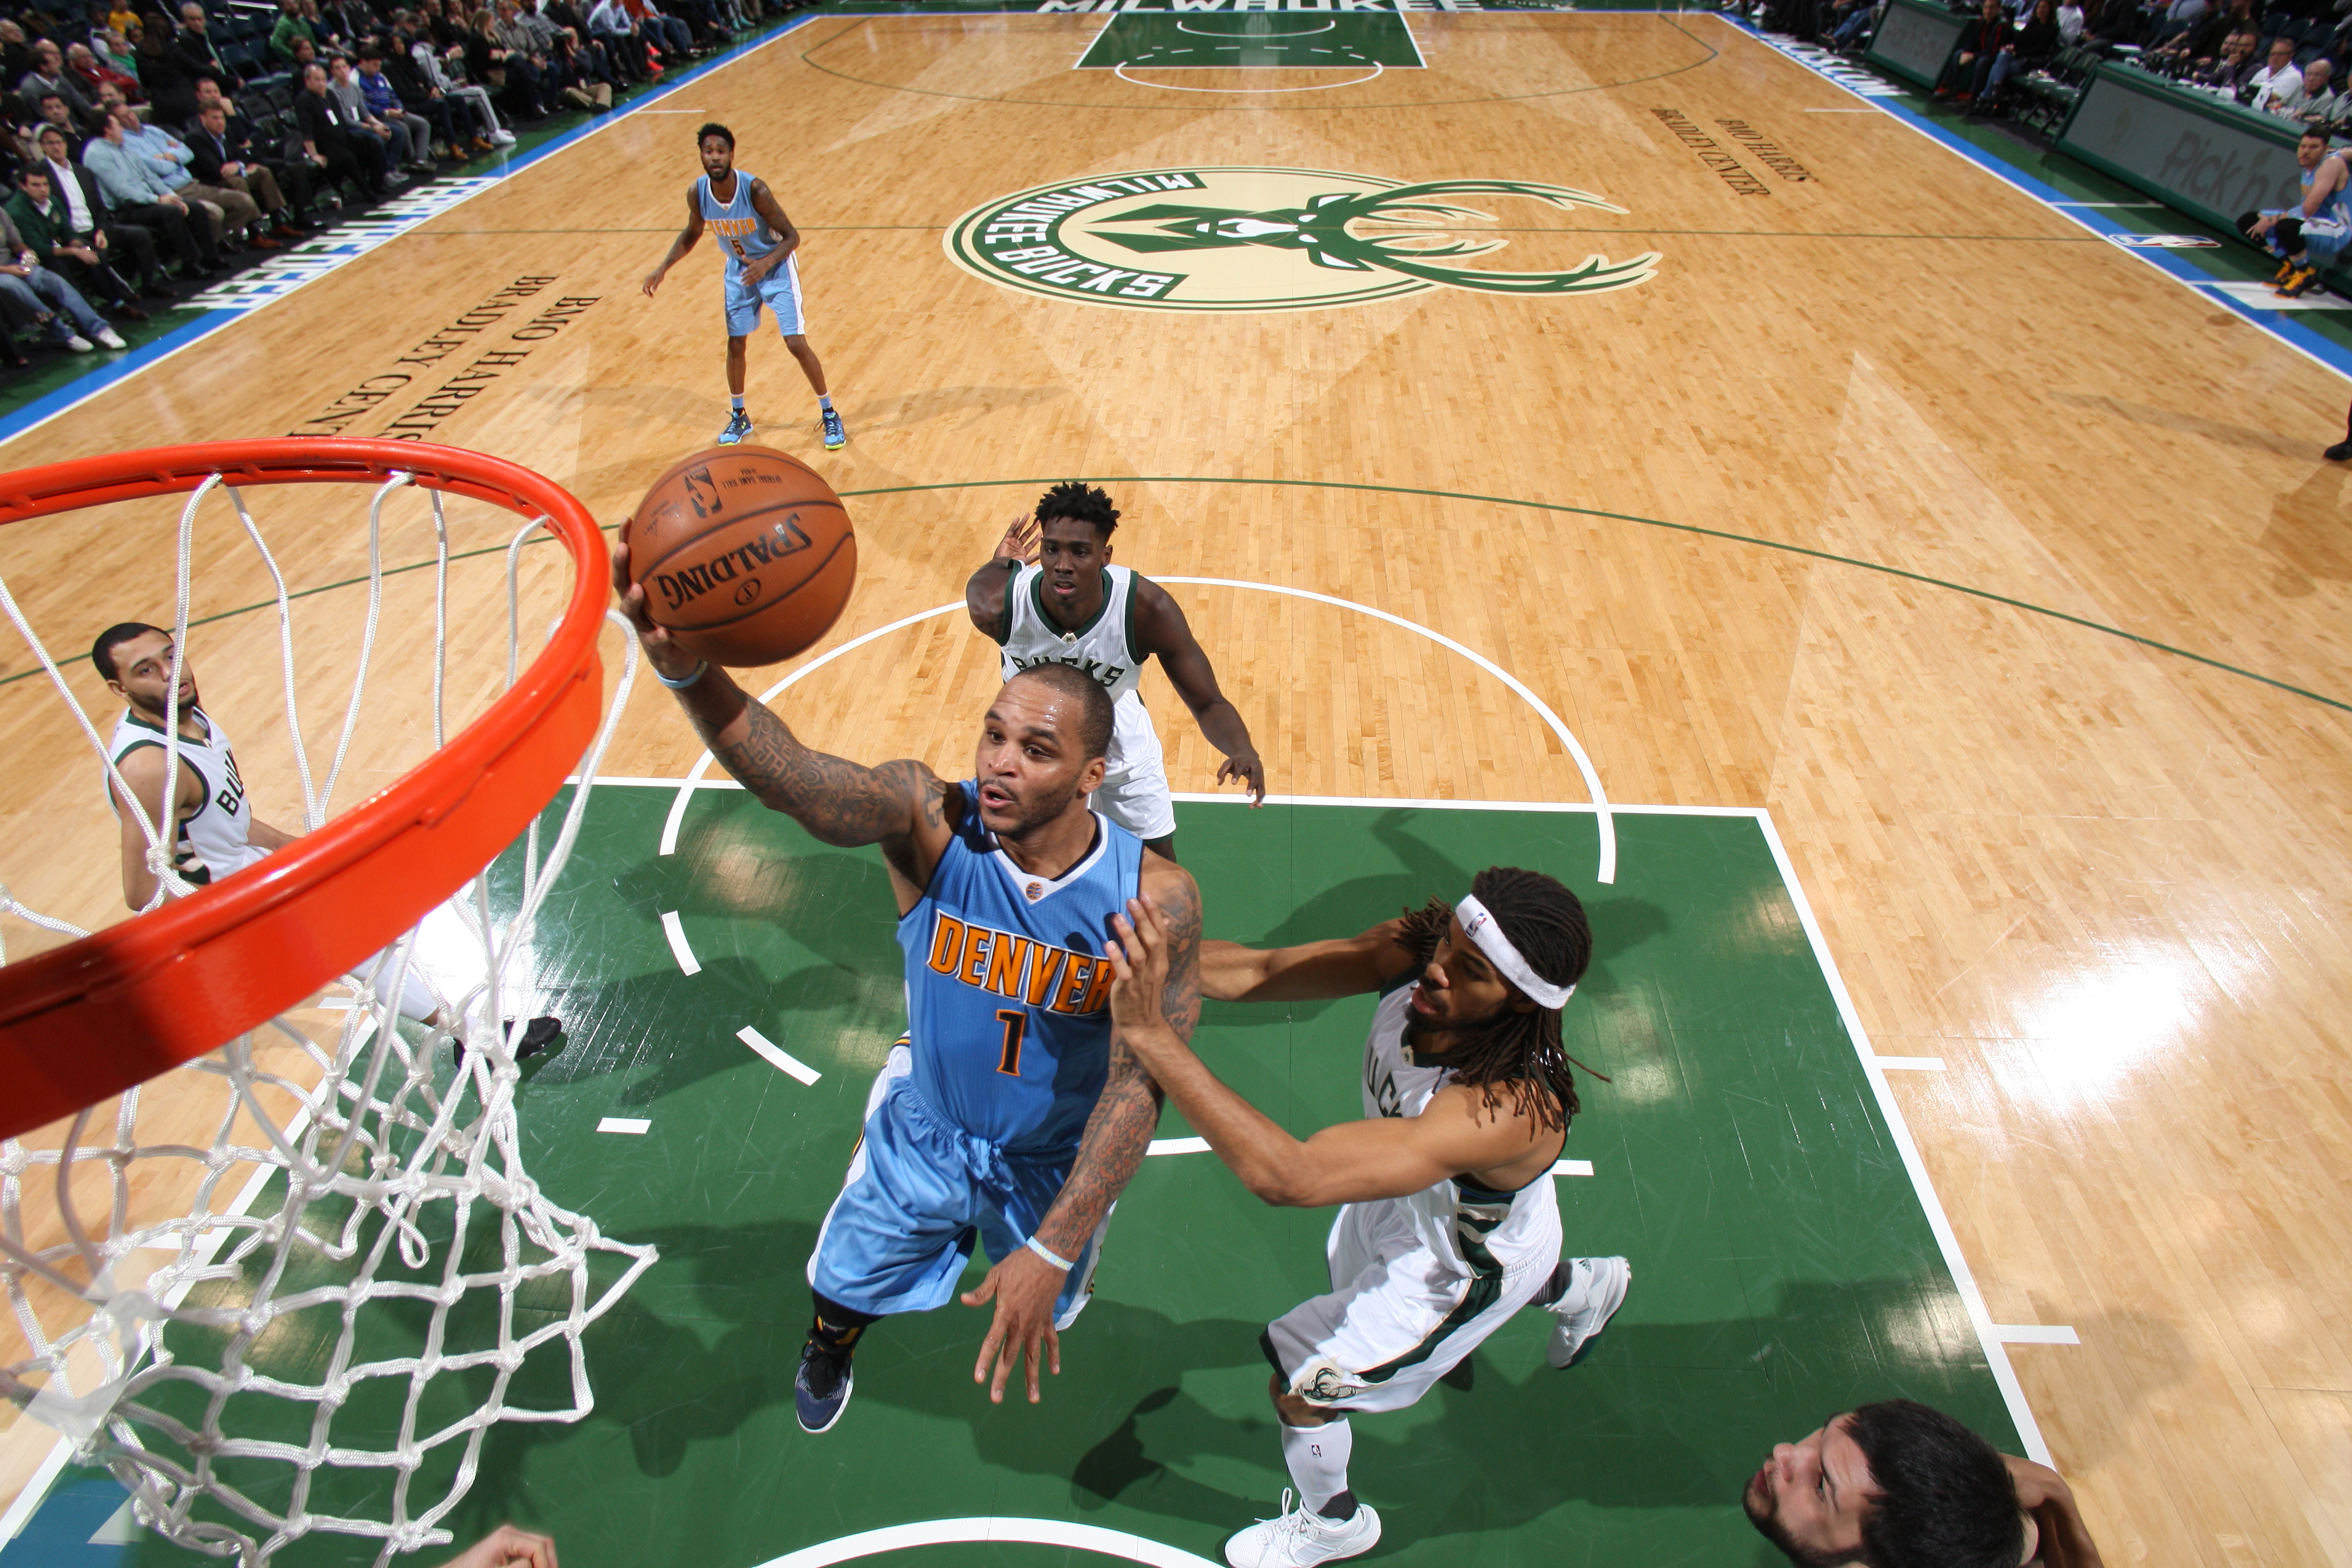 Milwaukee, WI - NOVEMBER 30: Jameer Nelson #1 of the Denver Nuggets shoots the ball against the Milwaukee Bucks on November 30, 2015 at the BMO Harris Bradley Center in Milwaukee, Wisconsin. (Photo by Gary Dineen/NBAE via Getty Images)